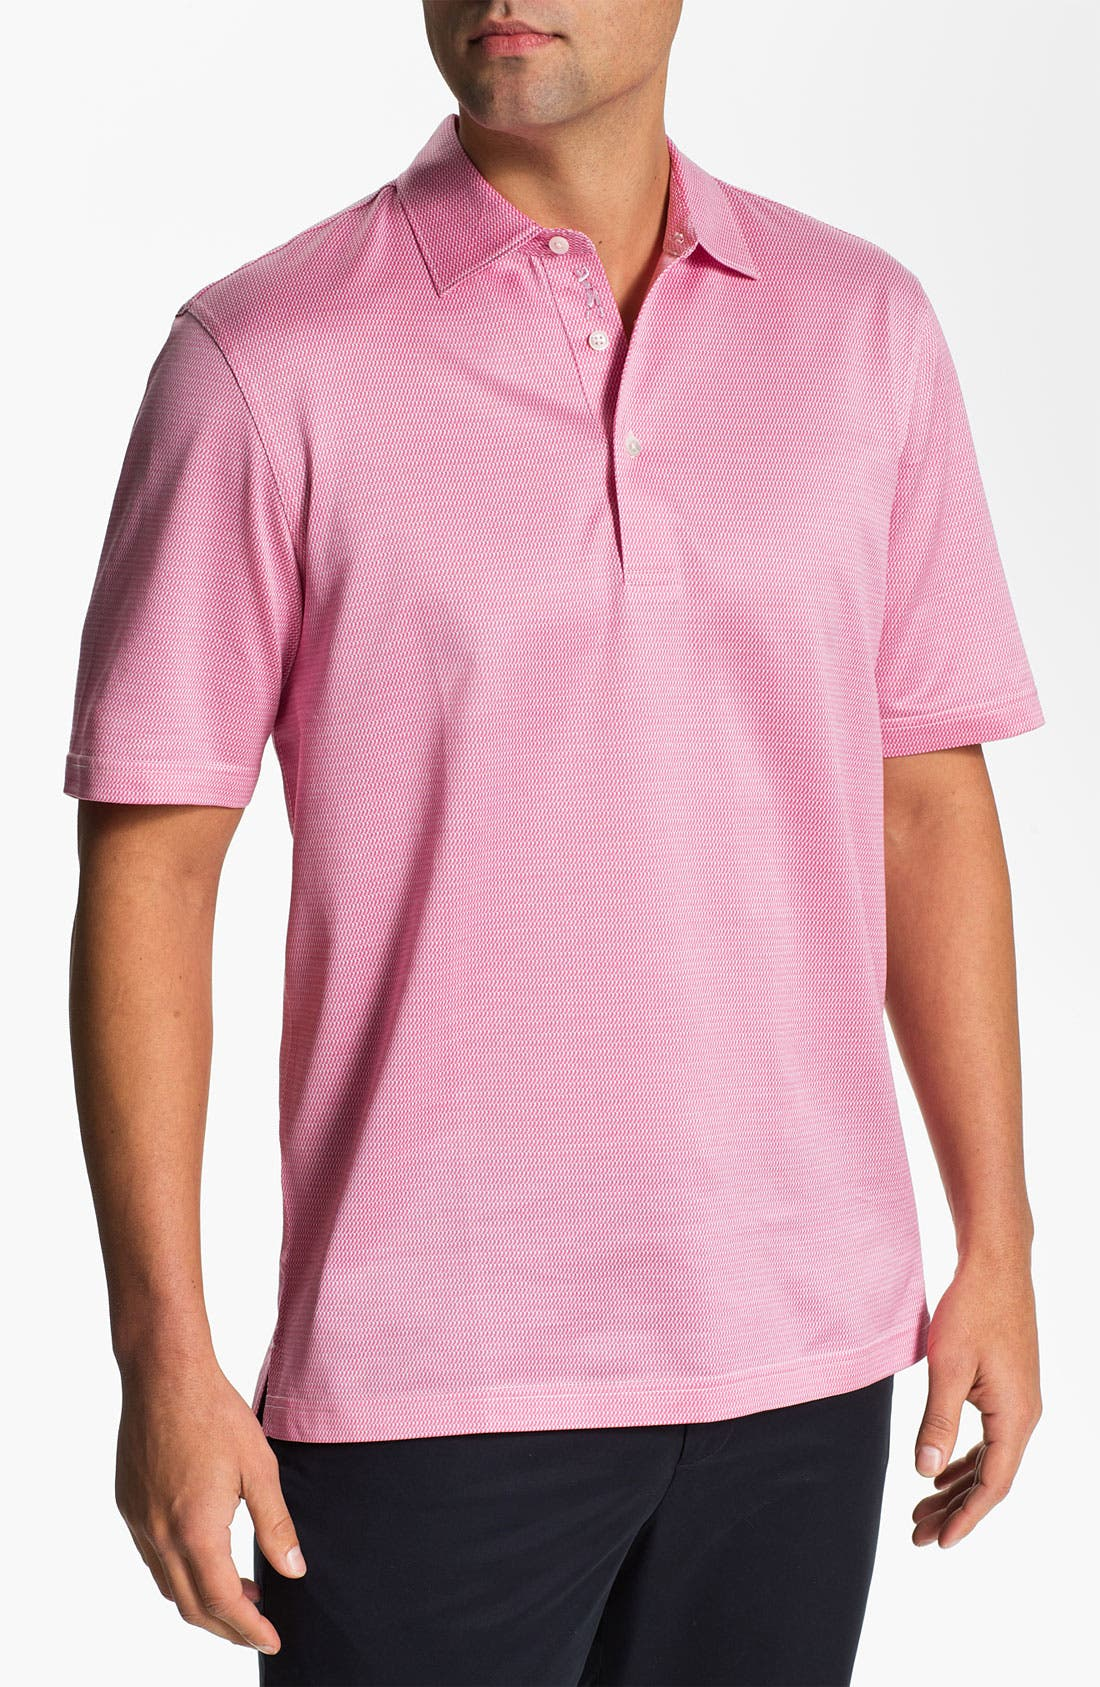 Main Image - Bobby Jones 'Staggered' Jacquard Golf Polo